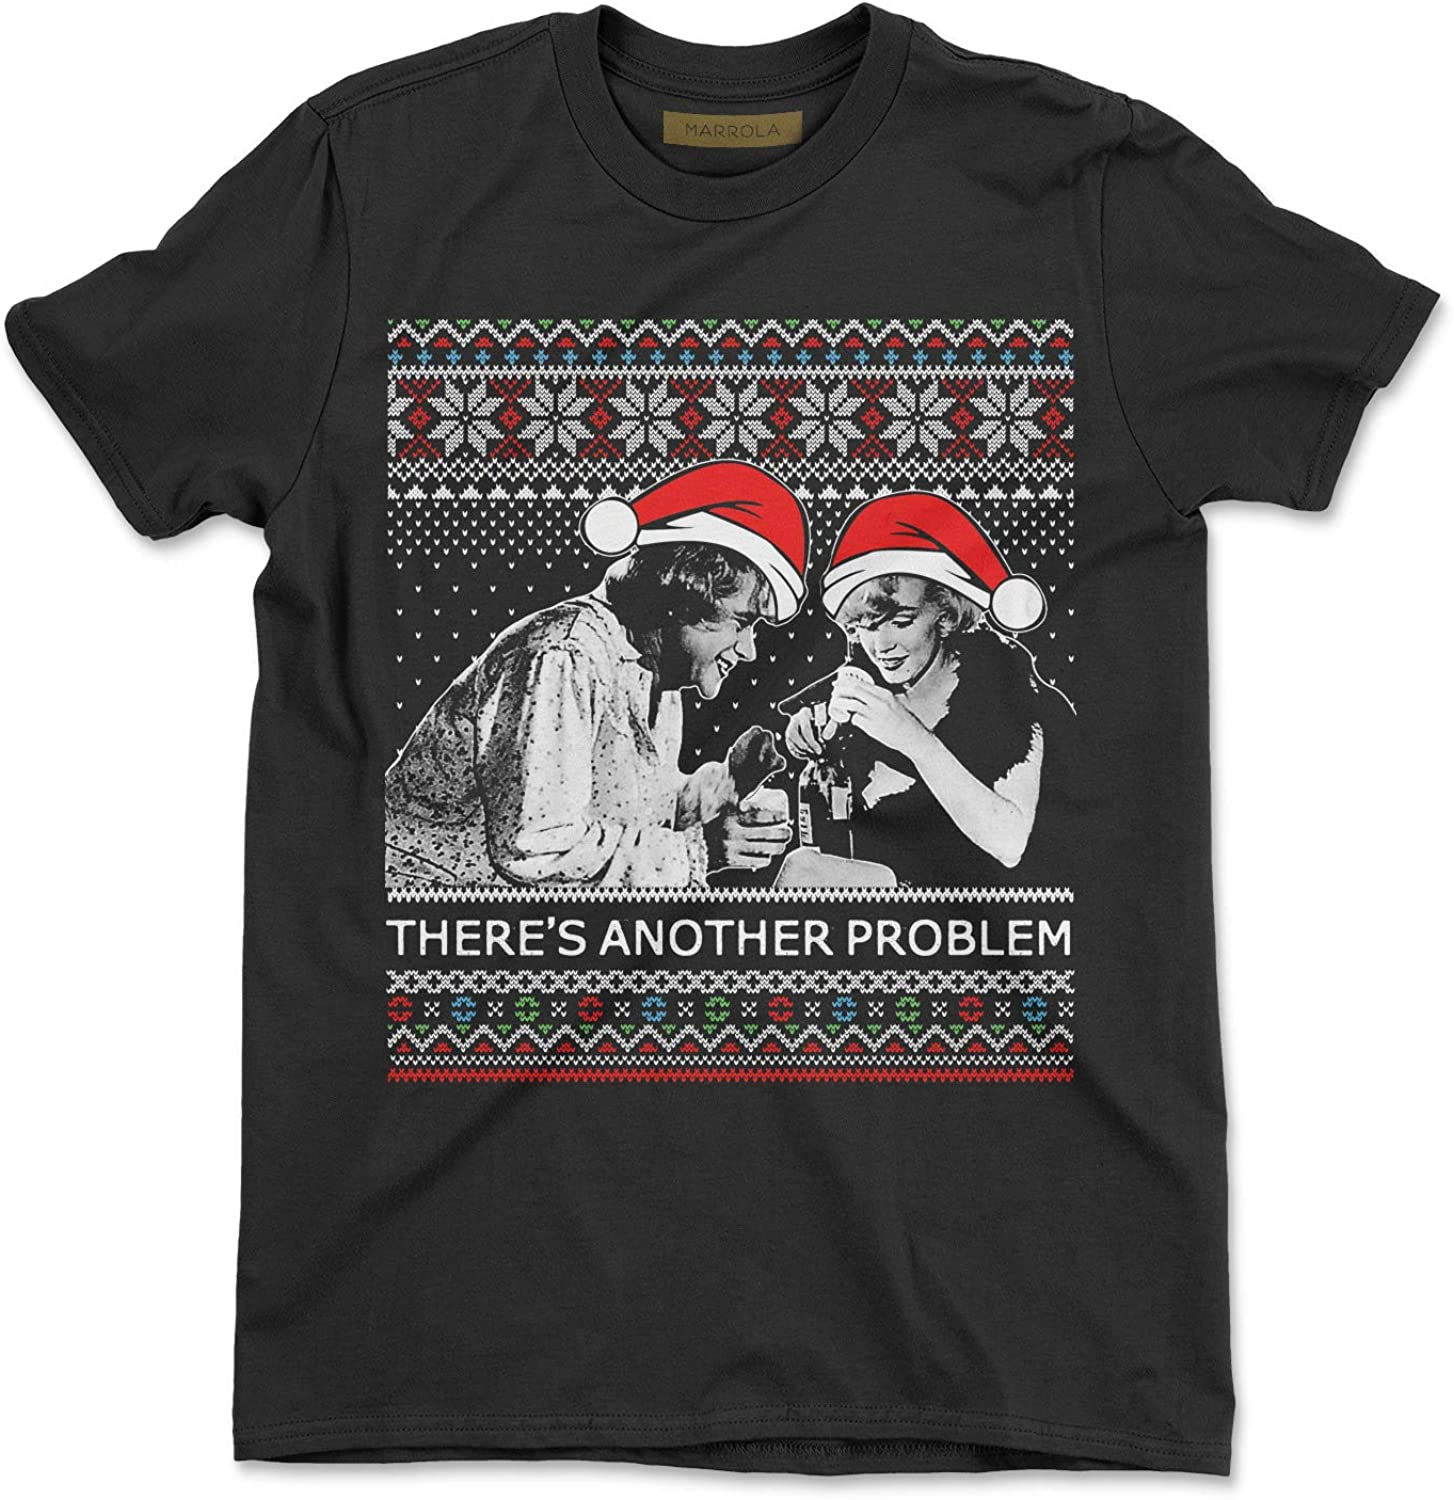 Marrola Theres Another Problem Ugly Christmas T-Shirt